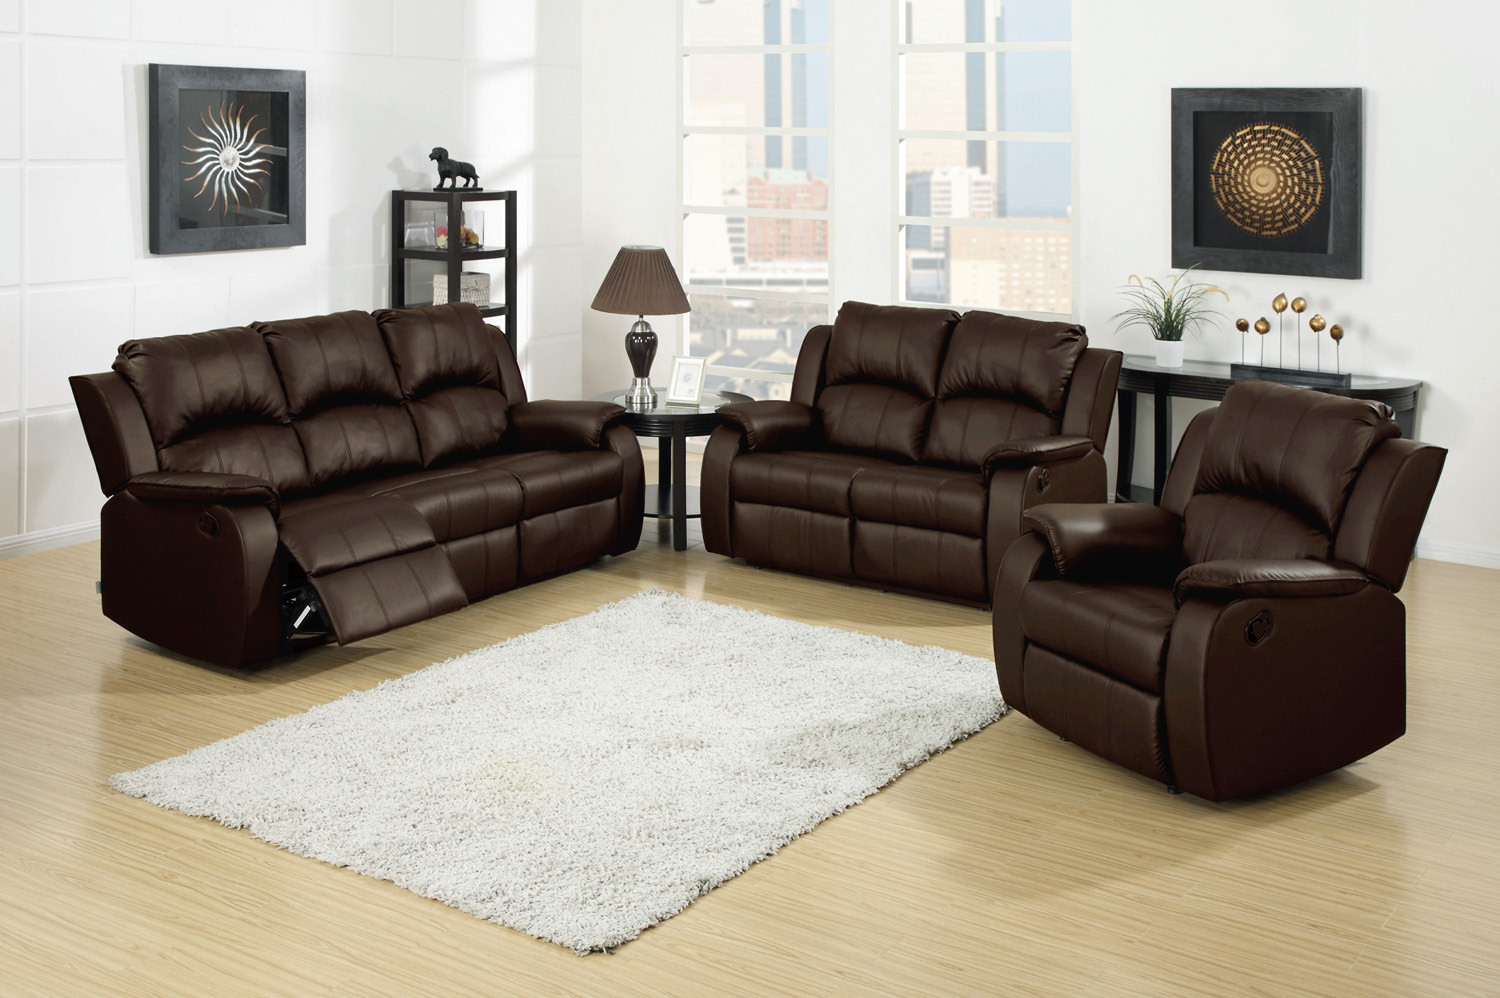 Berlin 3 Pc Leather Reclining Sofa, Loveseat and Recliner